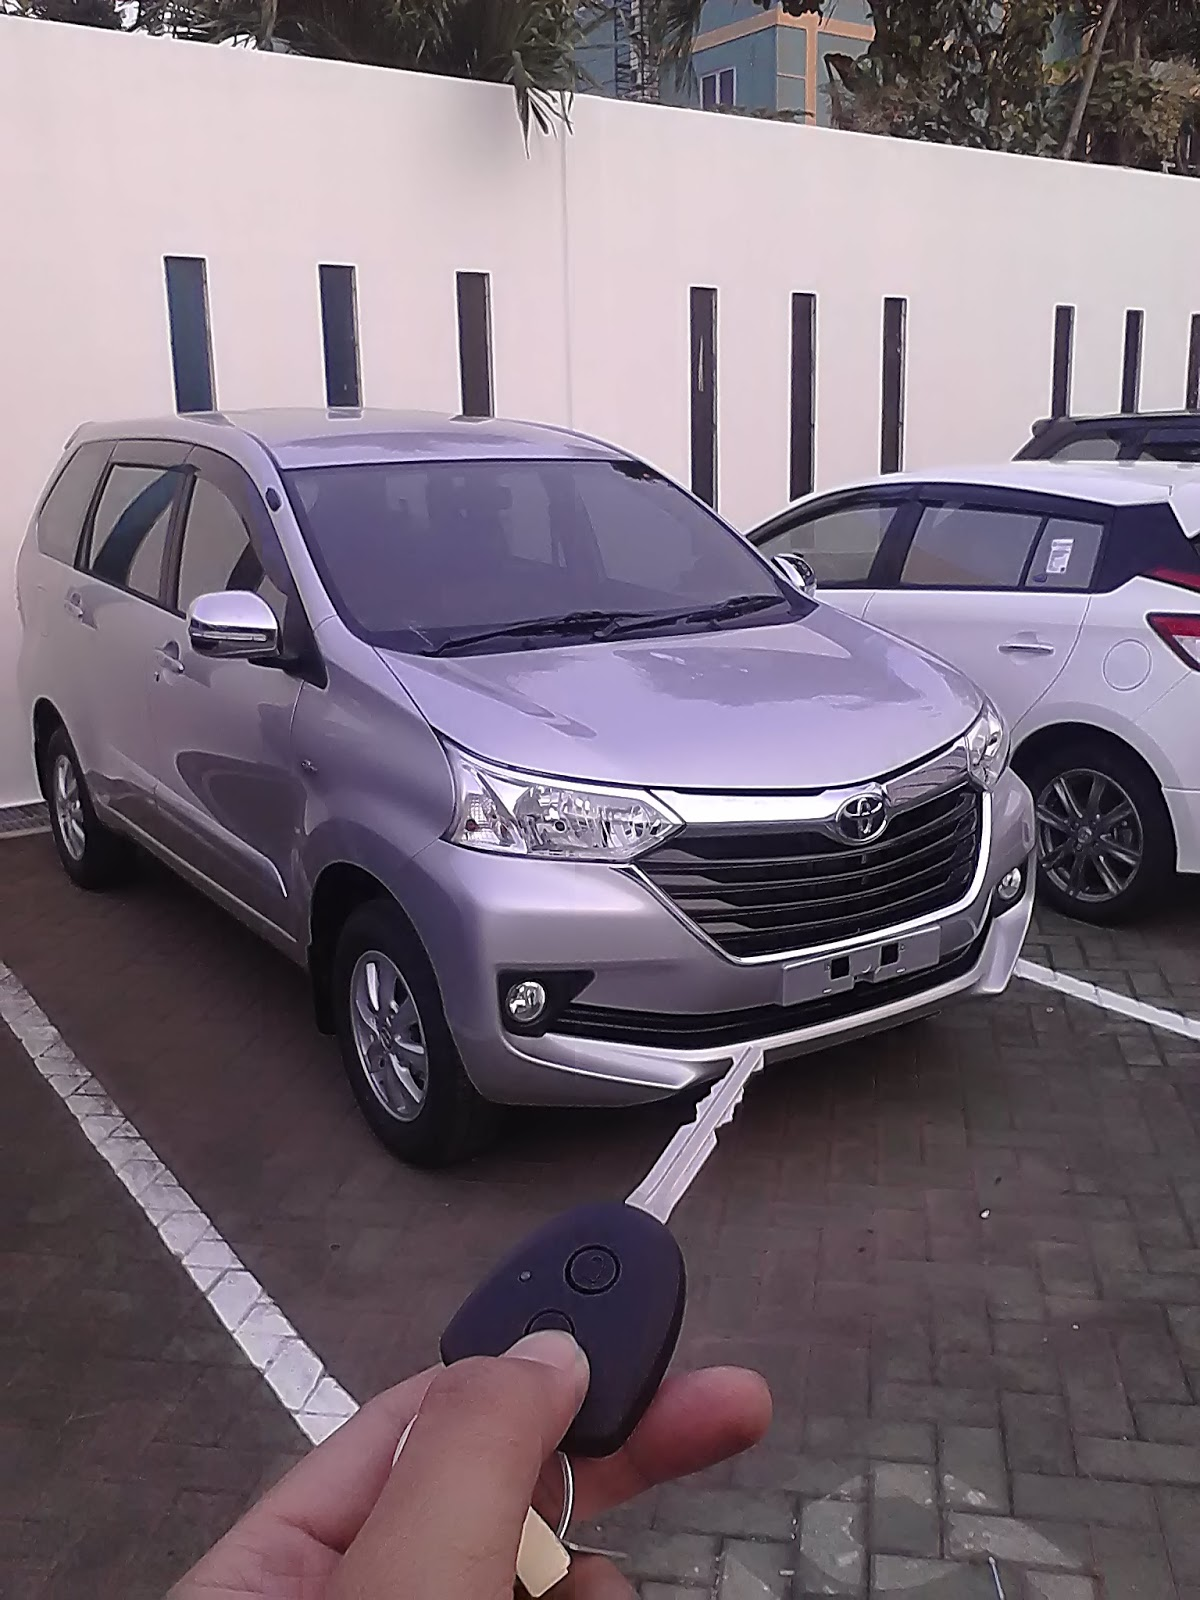 Launching Toyota Grand New Avanza All Alphard 2018 Indonesia Jual Beli Harga Jakarta Unboxing The